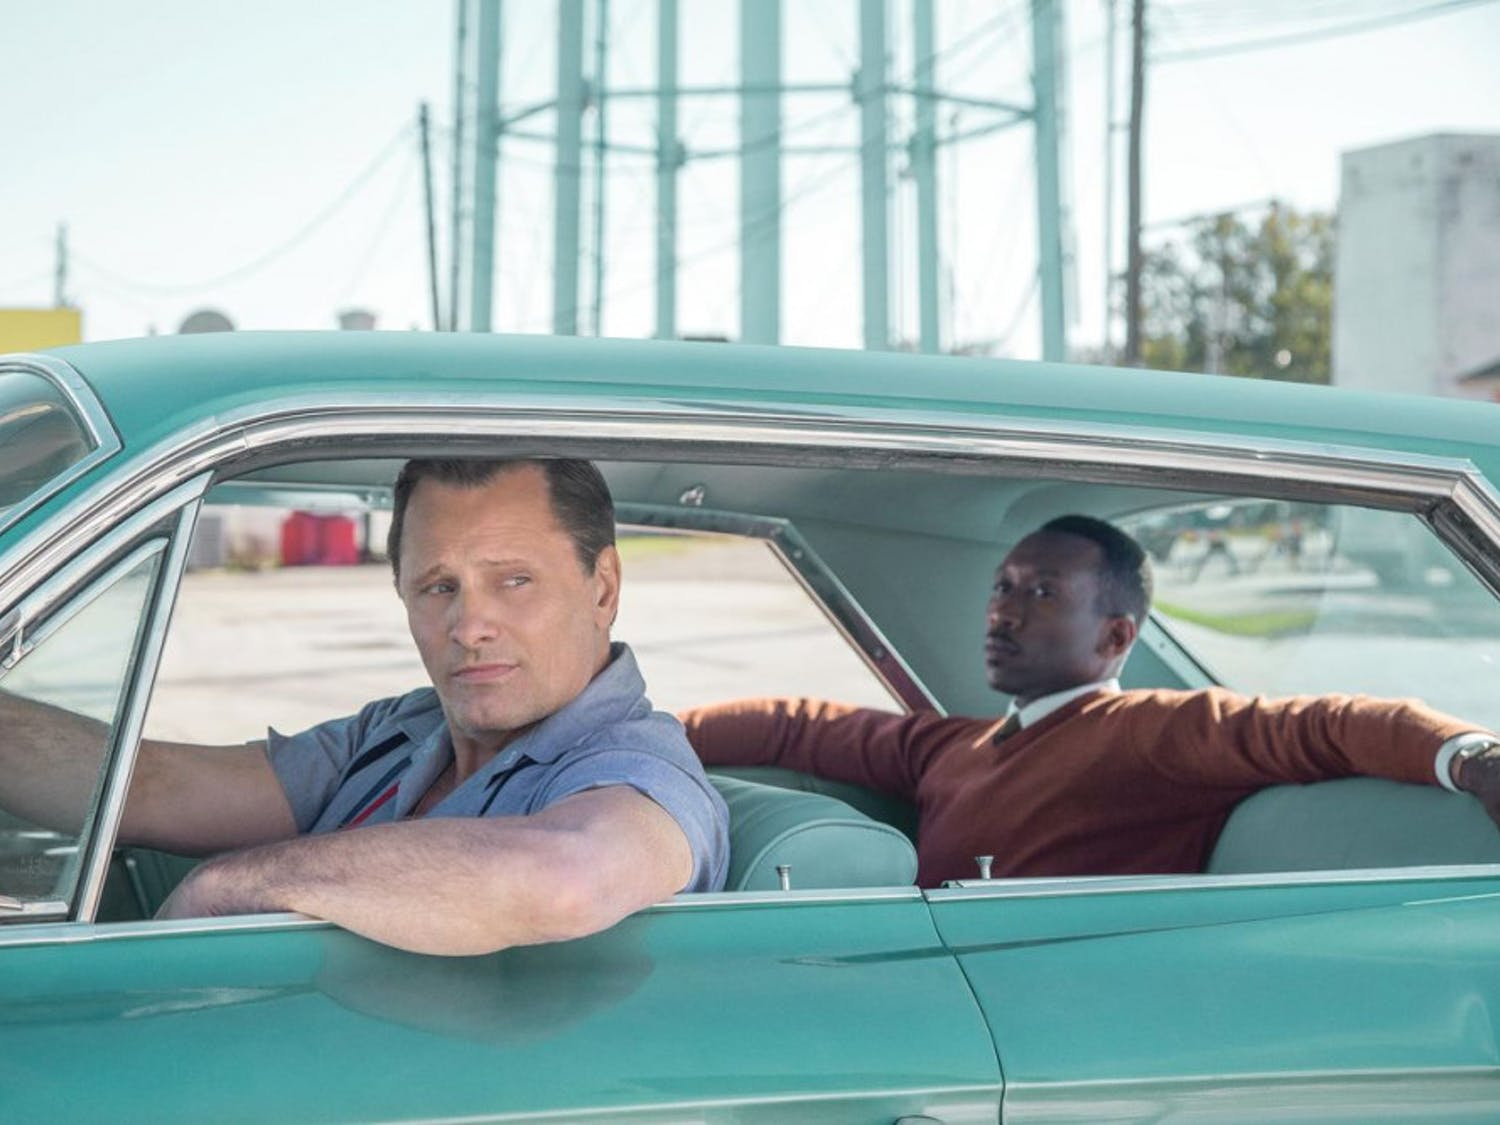 """Although the story is extremely problematic,Mahershala Ali, who played Dr. Don Shirley, and Viggo Mortensen, who portrayed Frank """"Tony Lip"""" Vallelonga, both had phenomenal performances."""